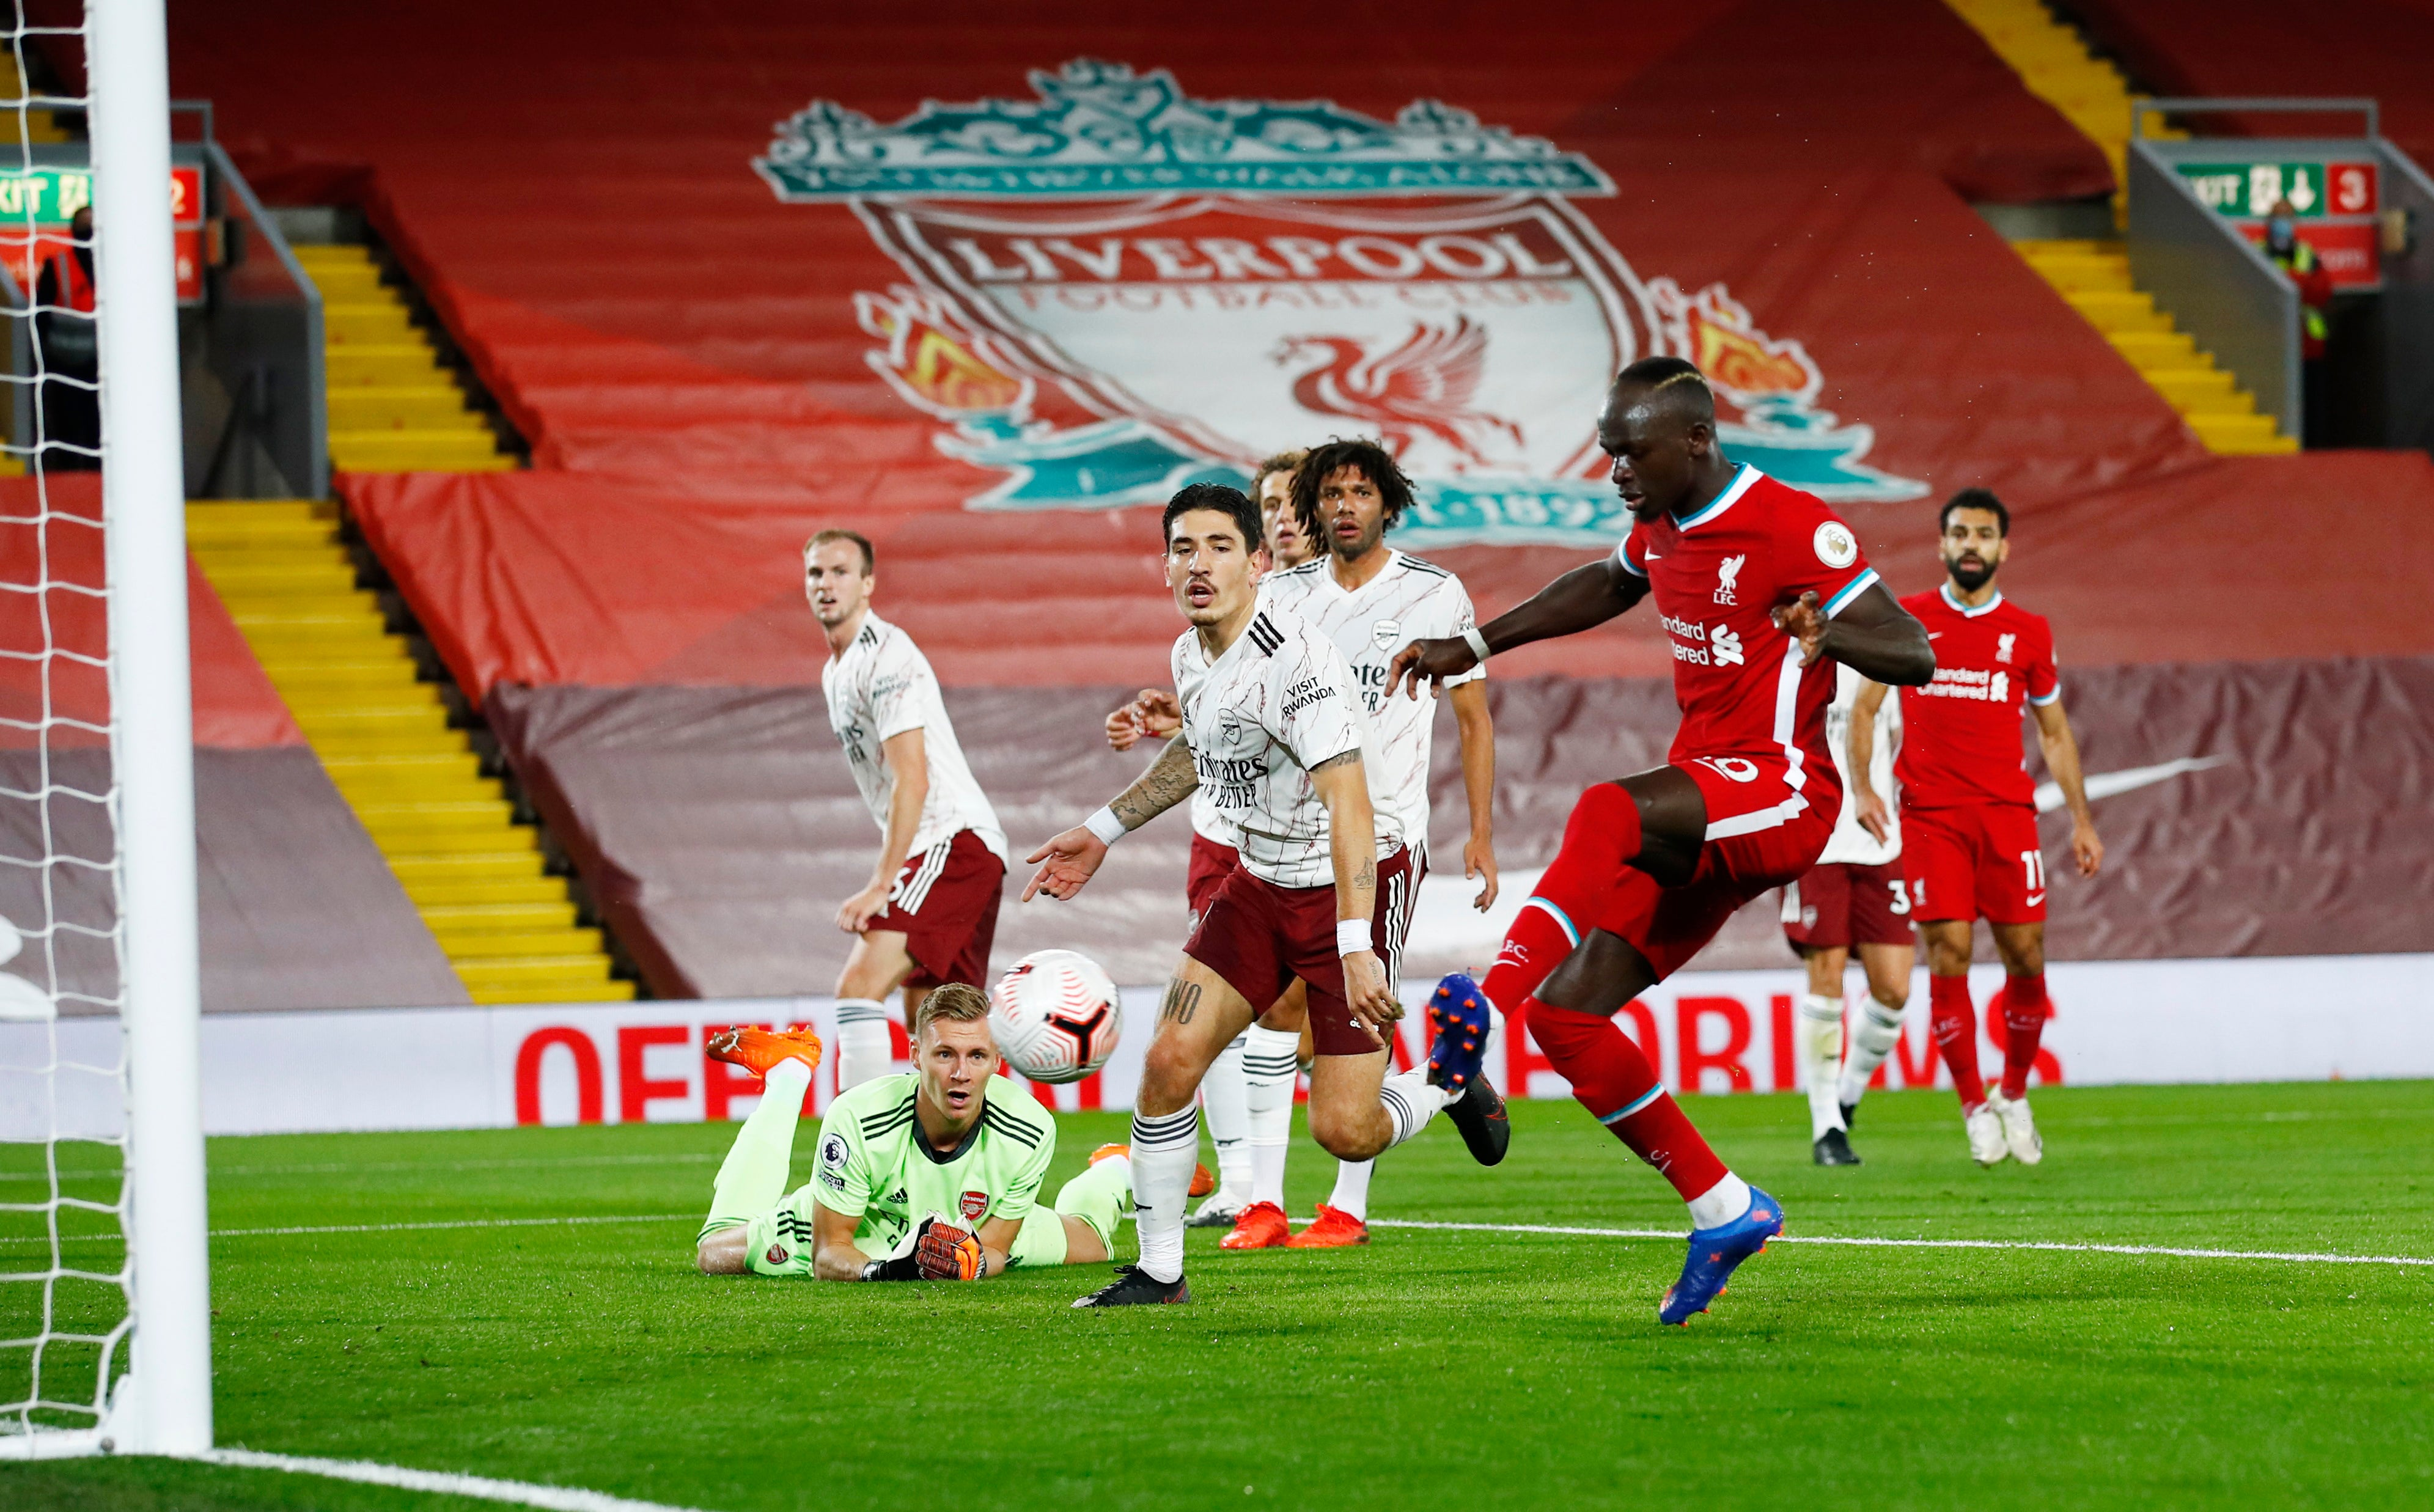 Liverpool vs Arsenal LIVE: Result and reaction from Premier League fixture  tonight | The Independent